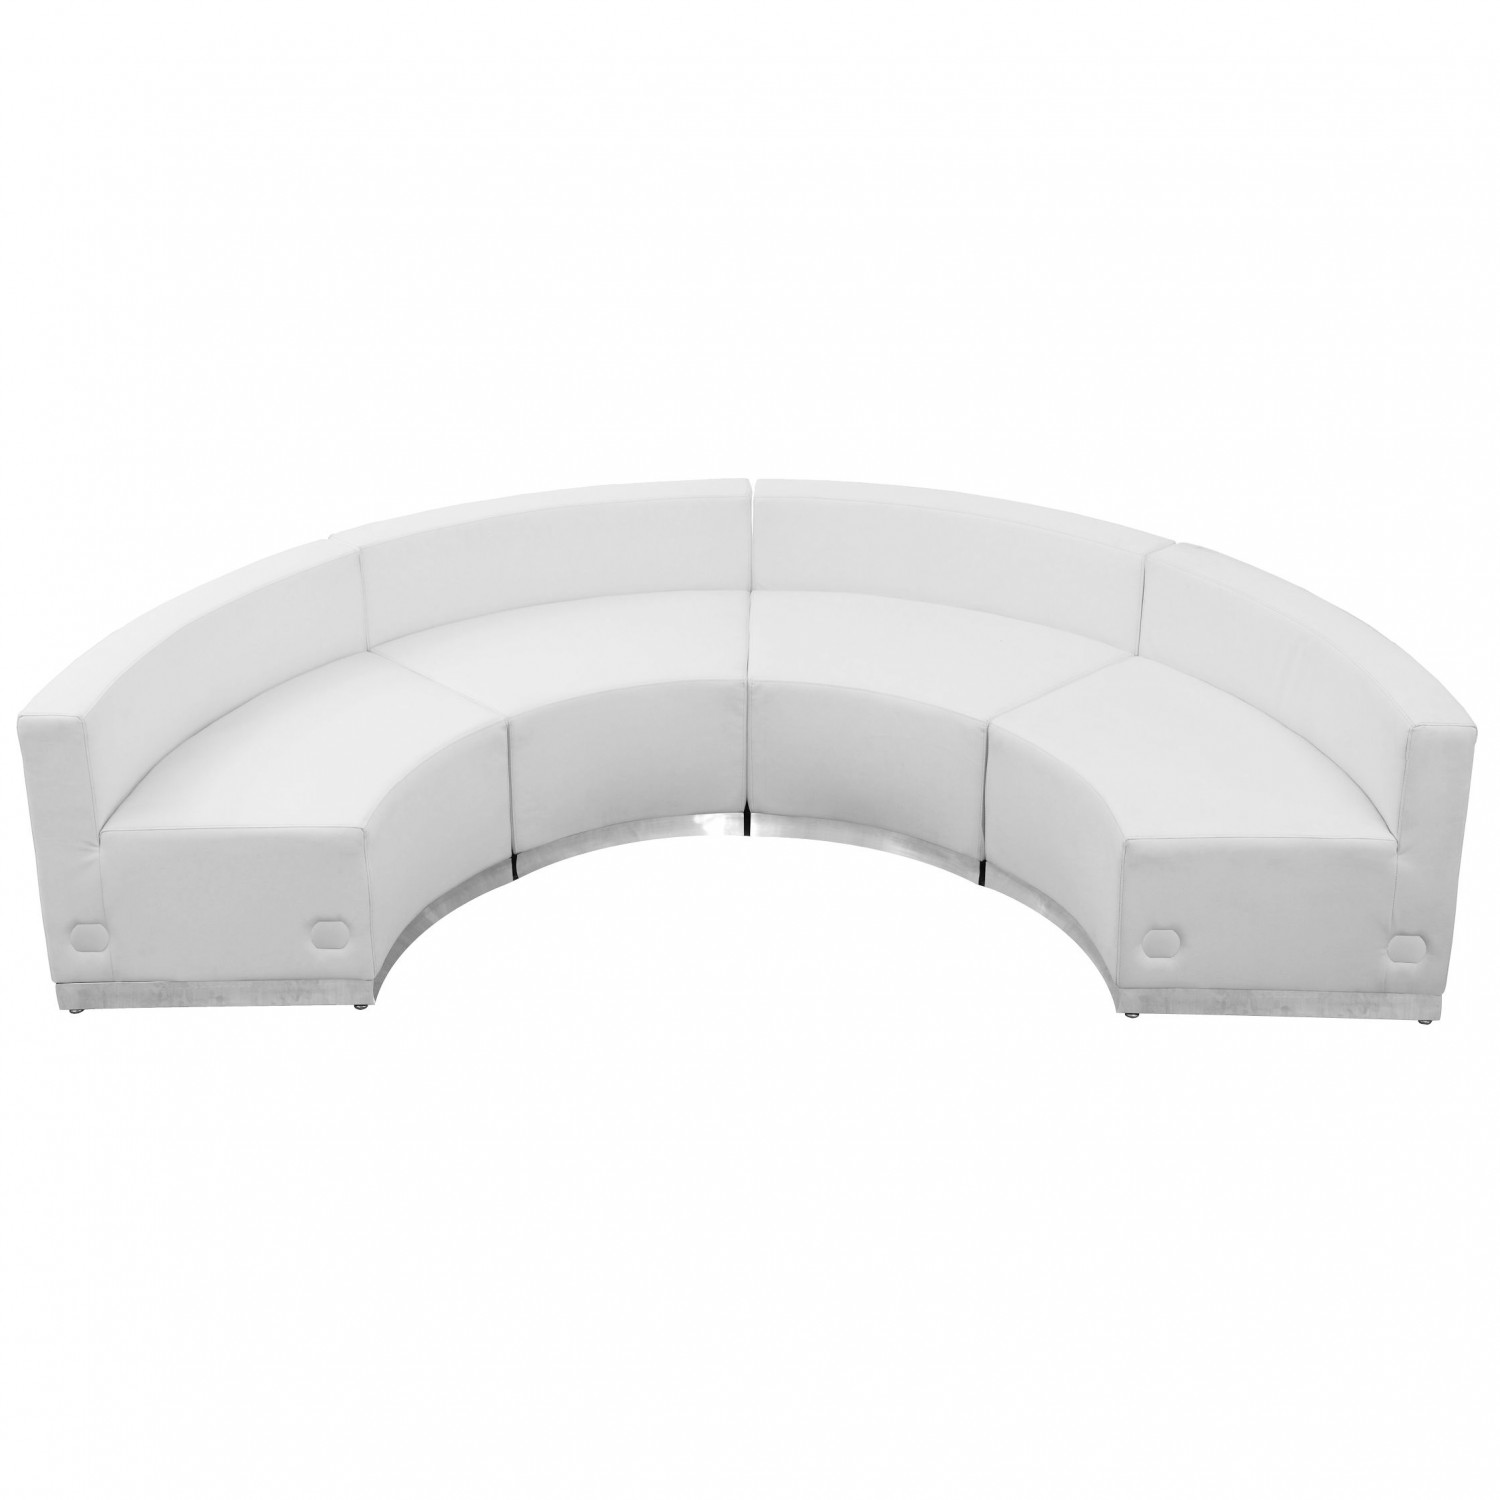 Flash Furniture ZB-803-480-SET-WH-GG HERCULES Alon Series White Leather Reception Configuration, 4 Piece